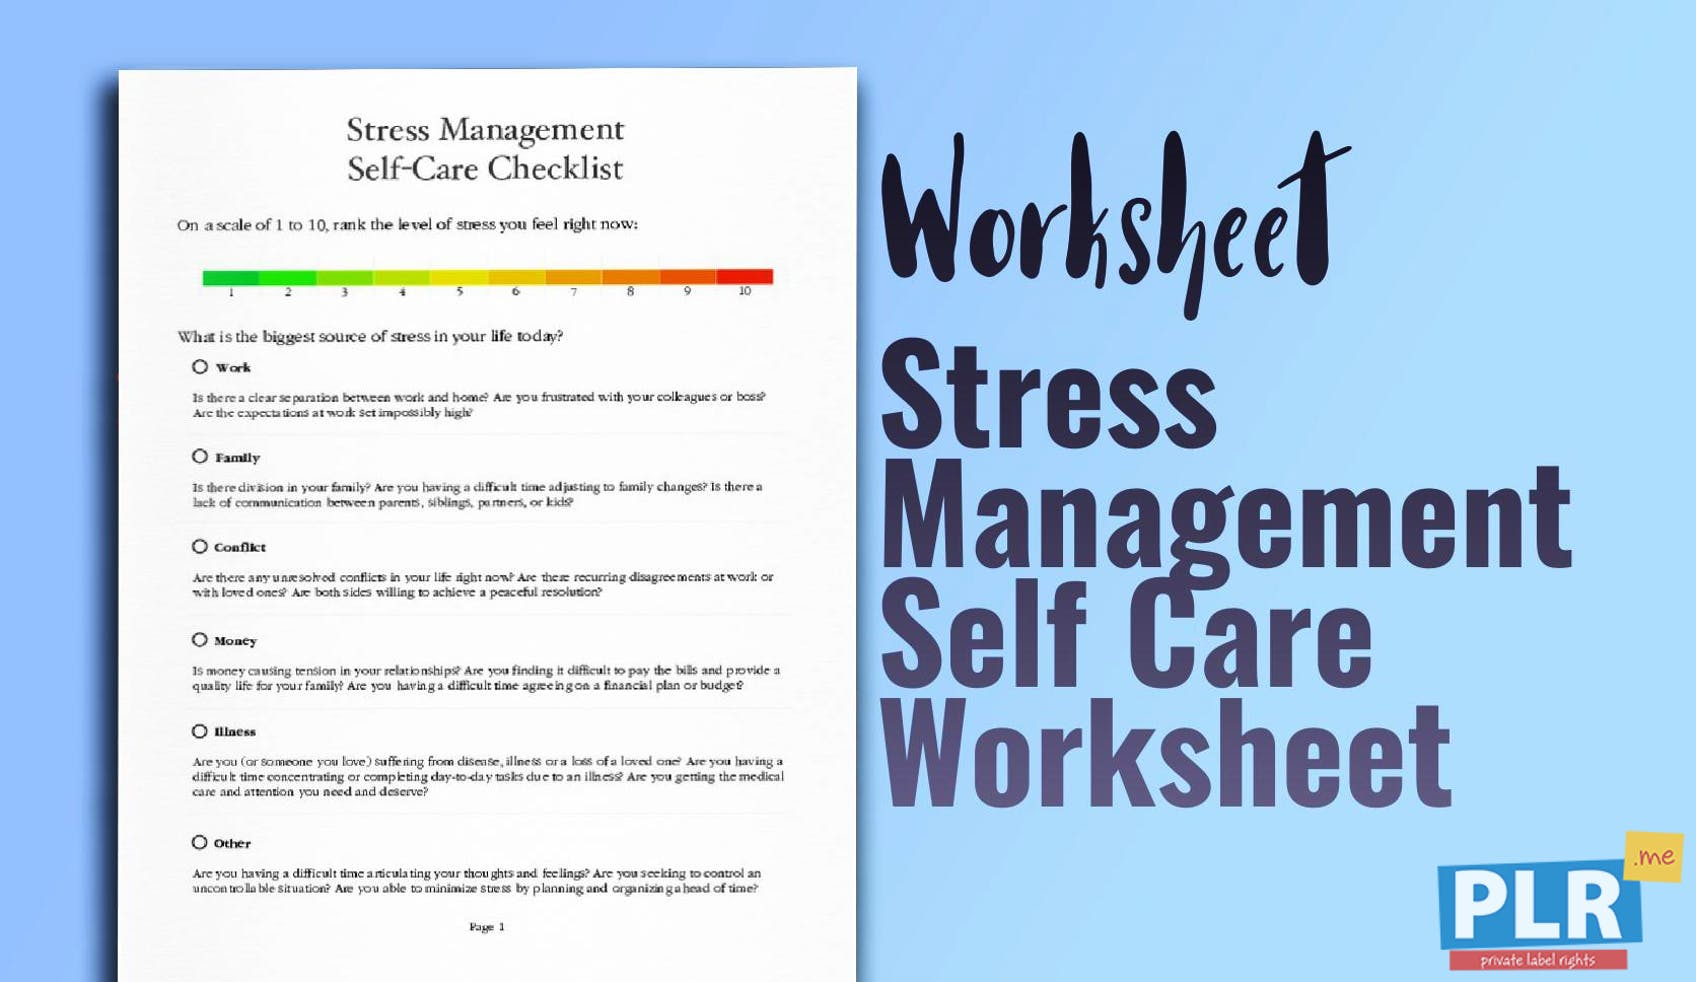 PLR Worksheets - Stress Management Self Care Worksheet - PLR.me